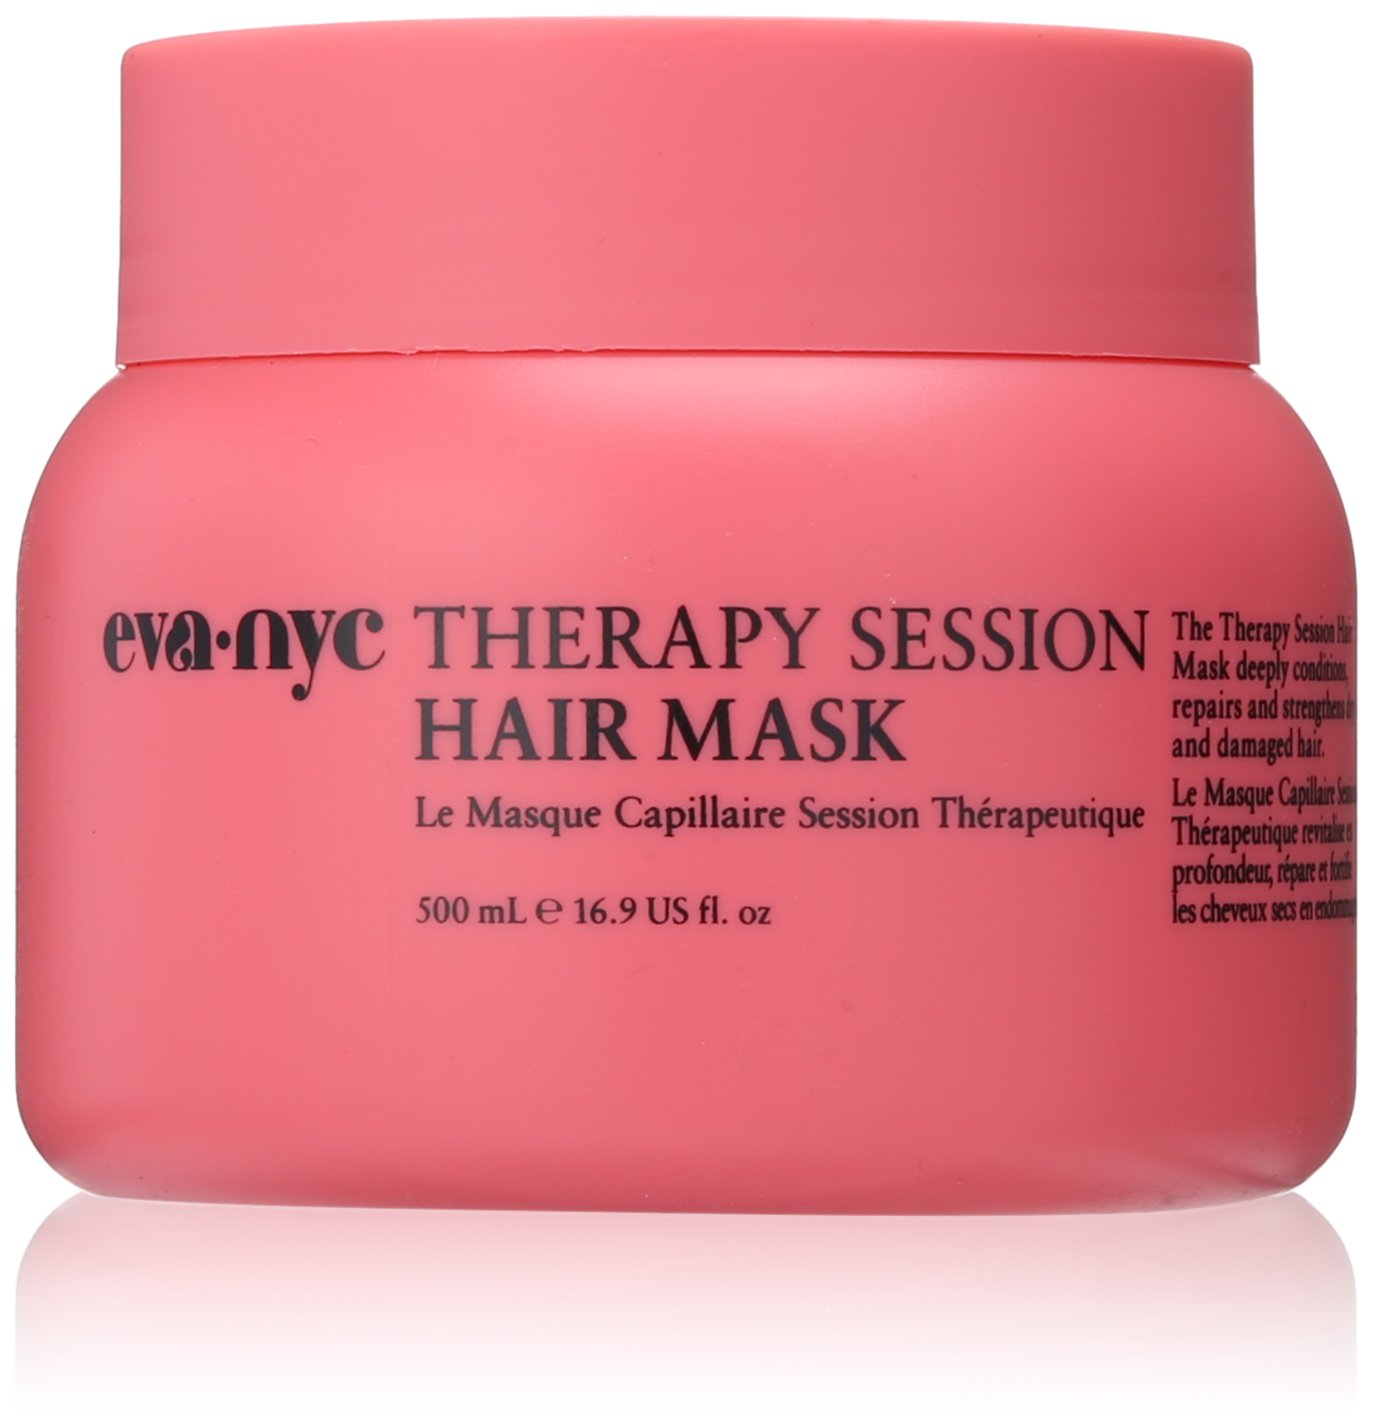 Eva NYC Therapy Sessions Hair Mask, 16.9 Ounce by EVA NYC